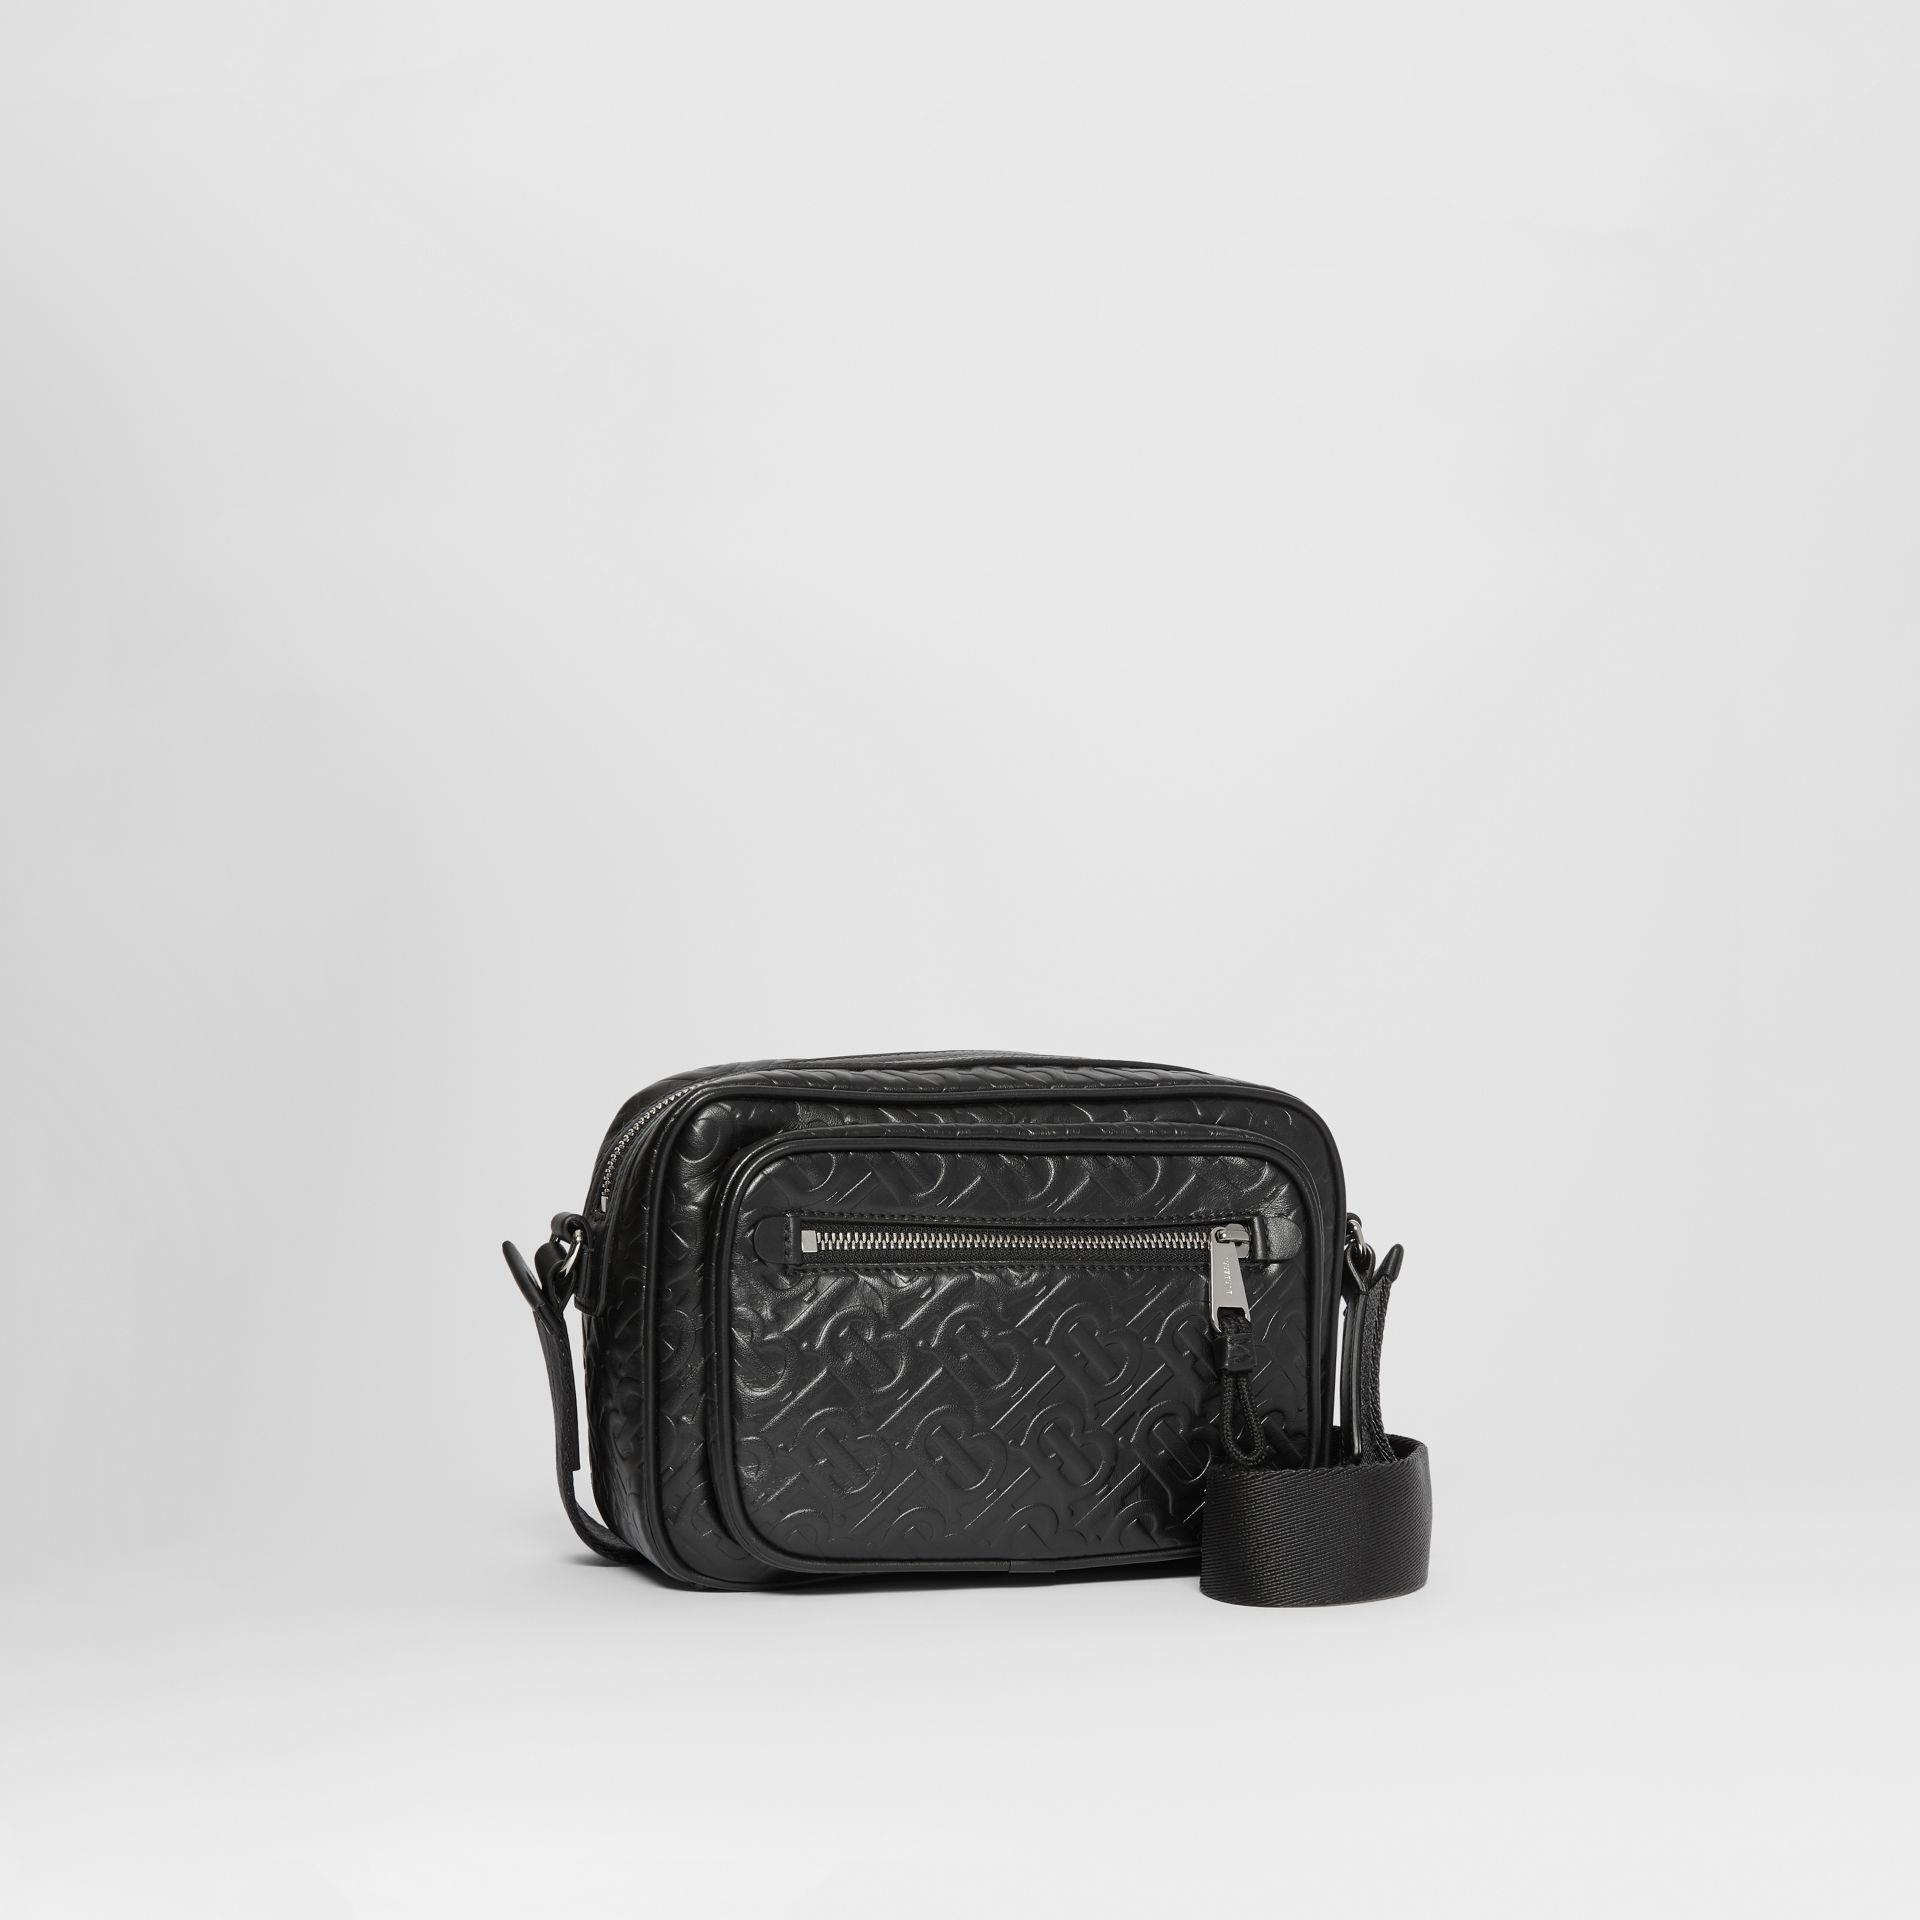 Monogram Leather Crossbody Bag in Black - Men | Burberry United States - gallery image 6